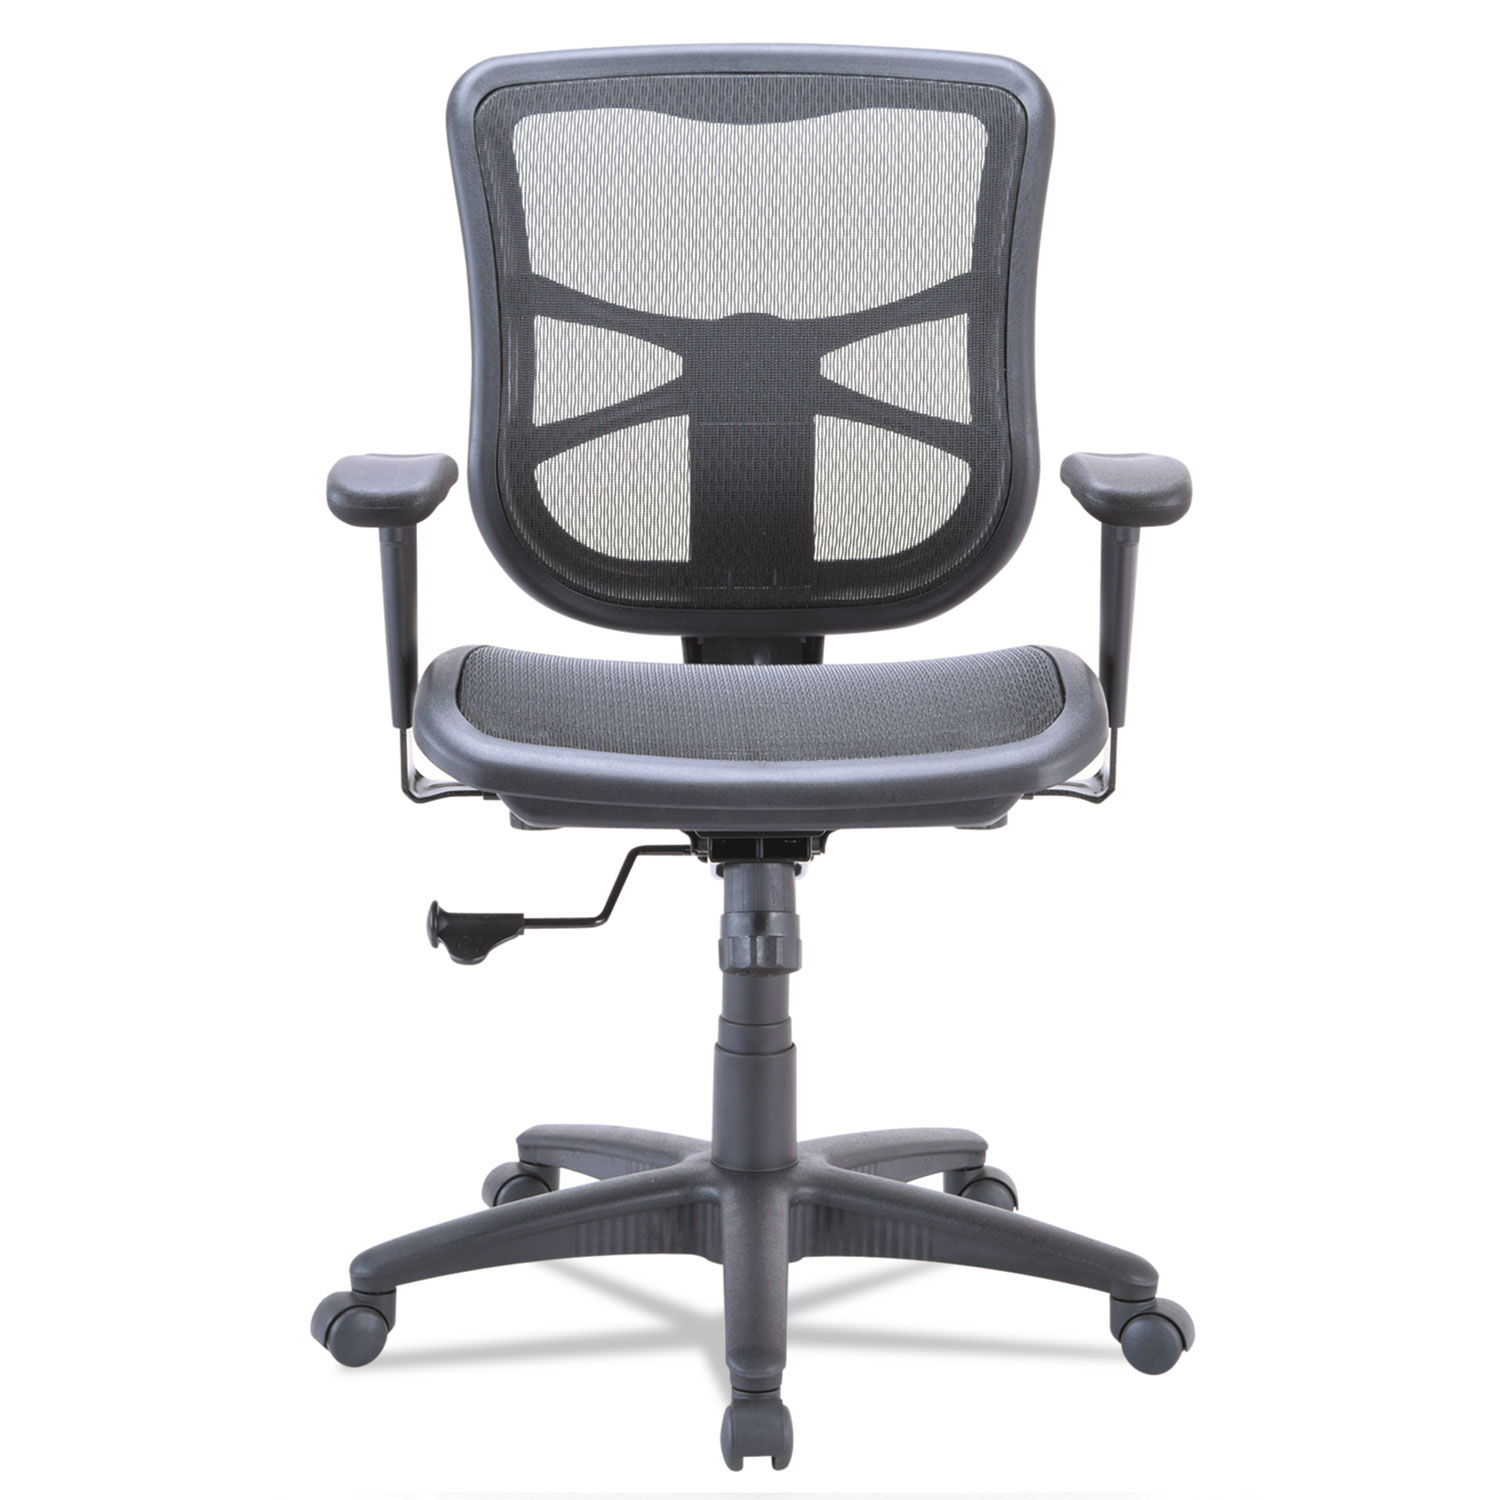 Alera Elusion Series Air Mesh Mid Back Swivel Tilt Chair by Alera